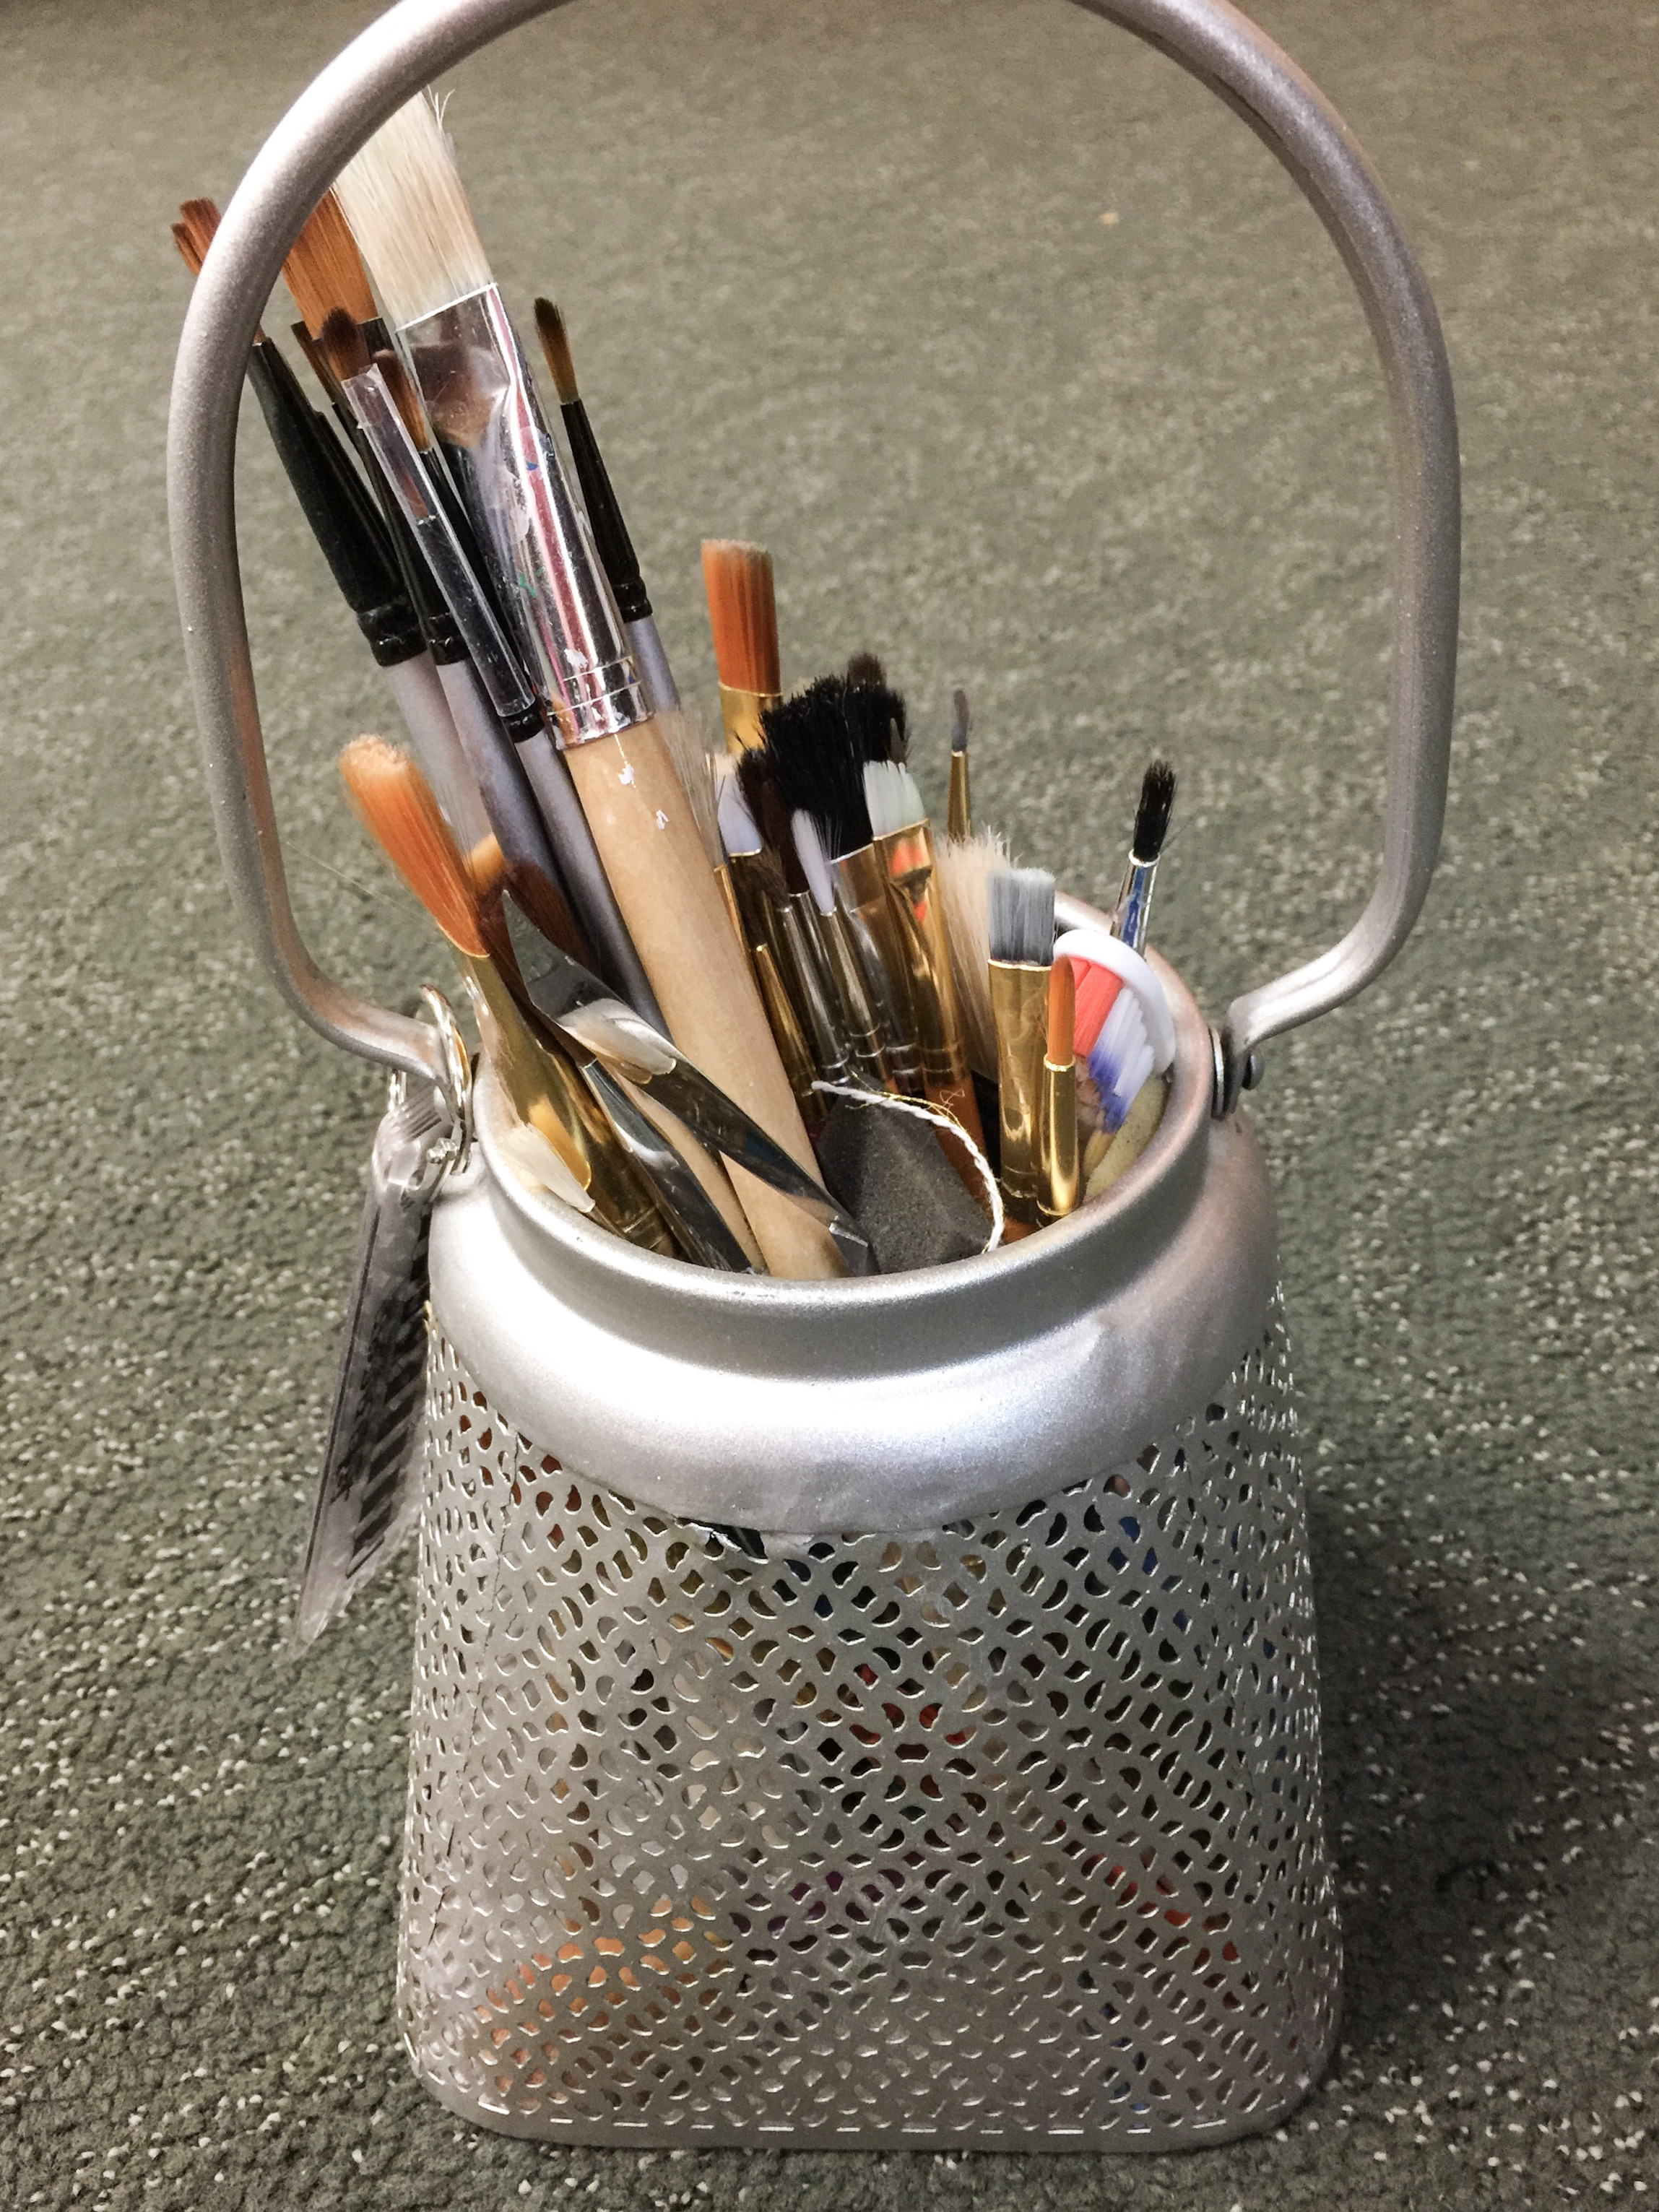 Where You Create / Packing for a retreat / organize on the go / scrapbooking supplies / artist brushes